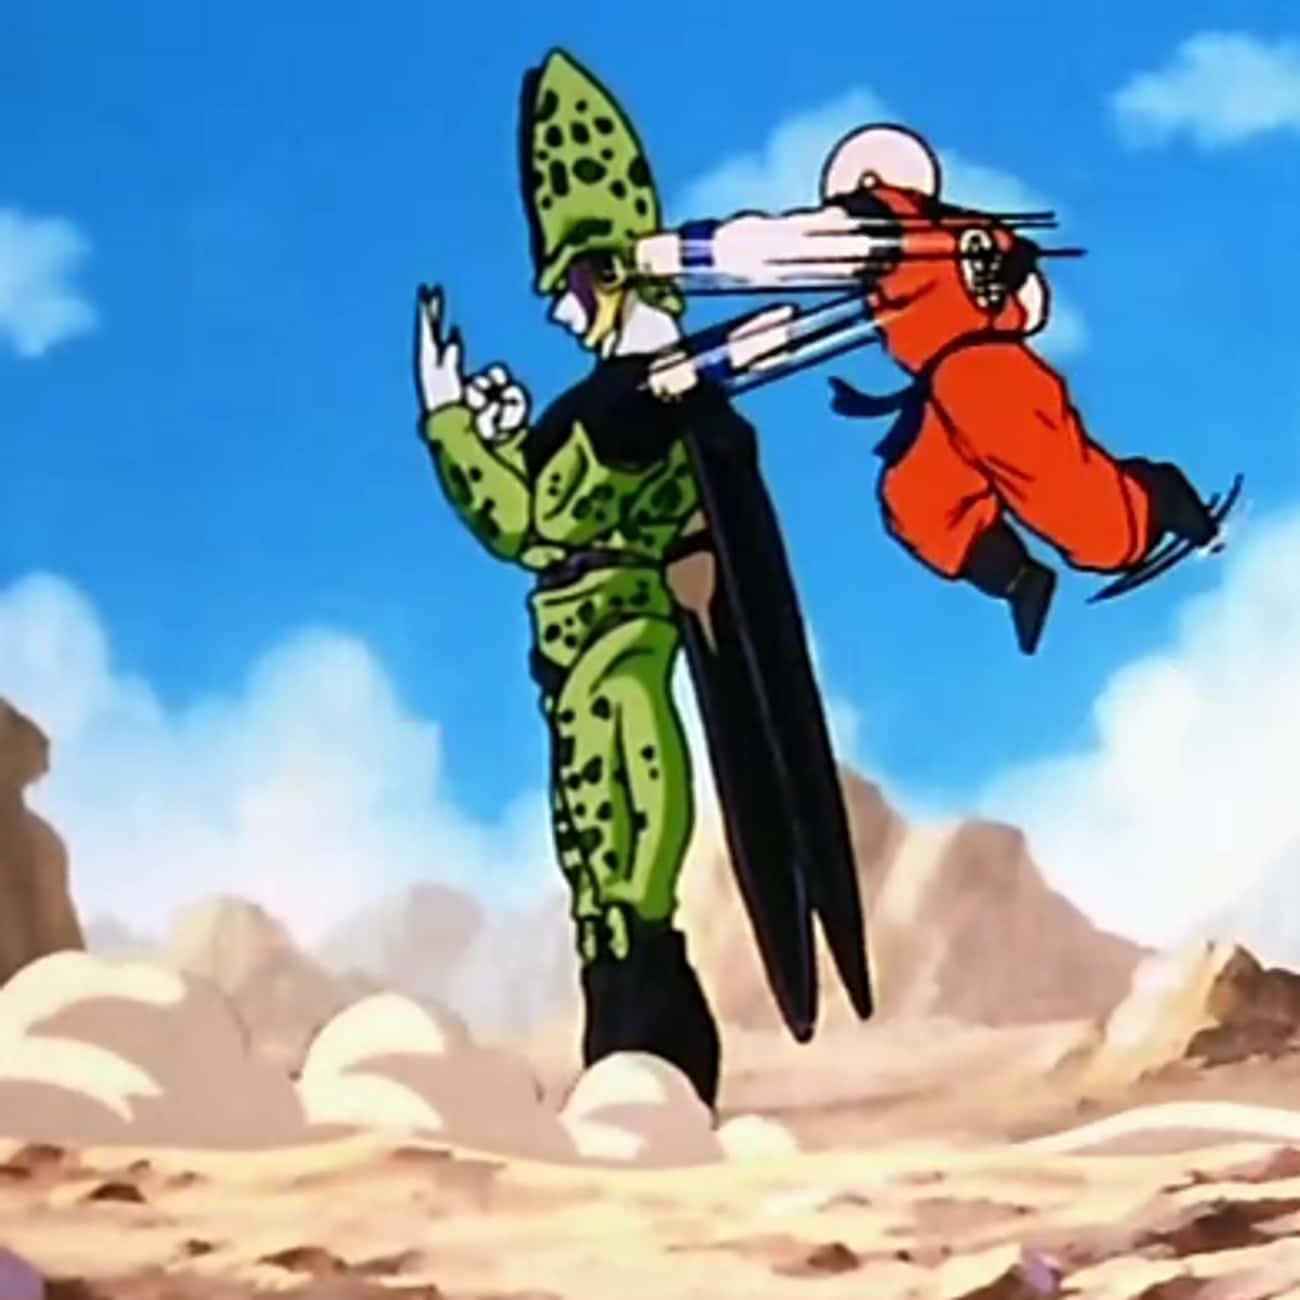 He Often Fights Way Above His  is listed (or ranked) 1 on the list 18 Reasons Krillin Is The MVP Of Dragon Ball Z